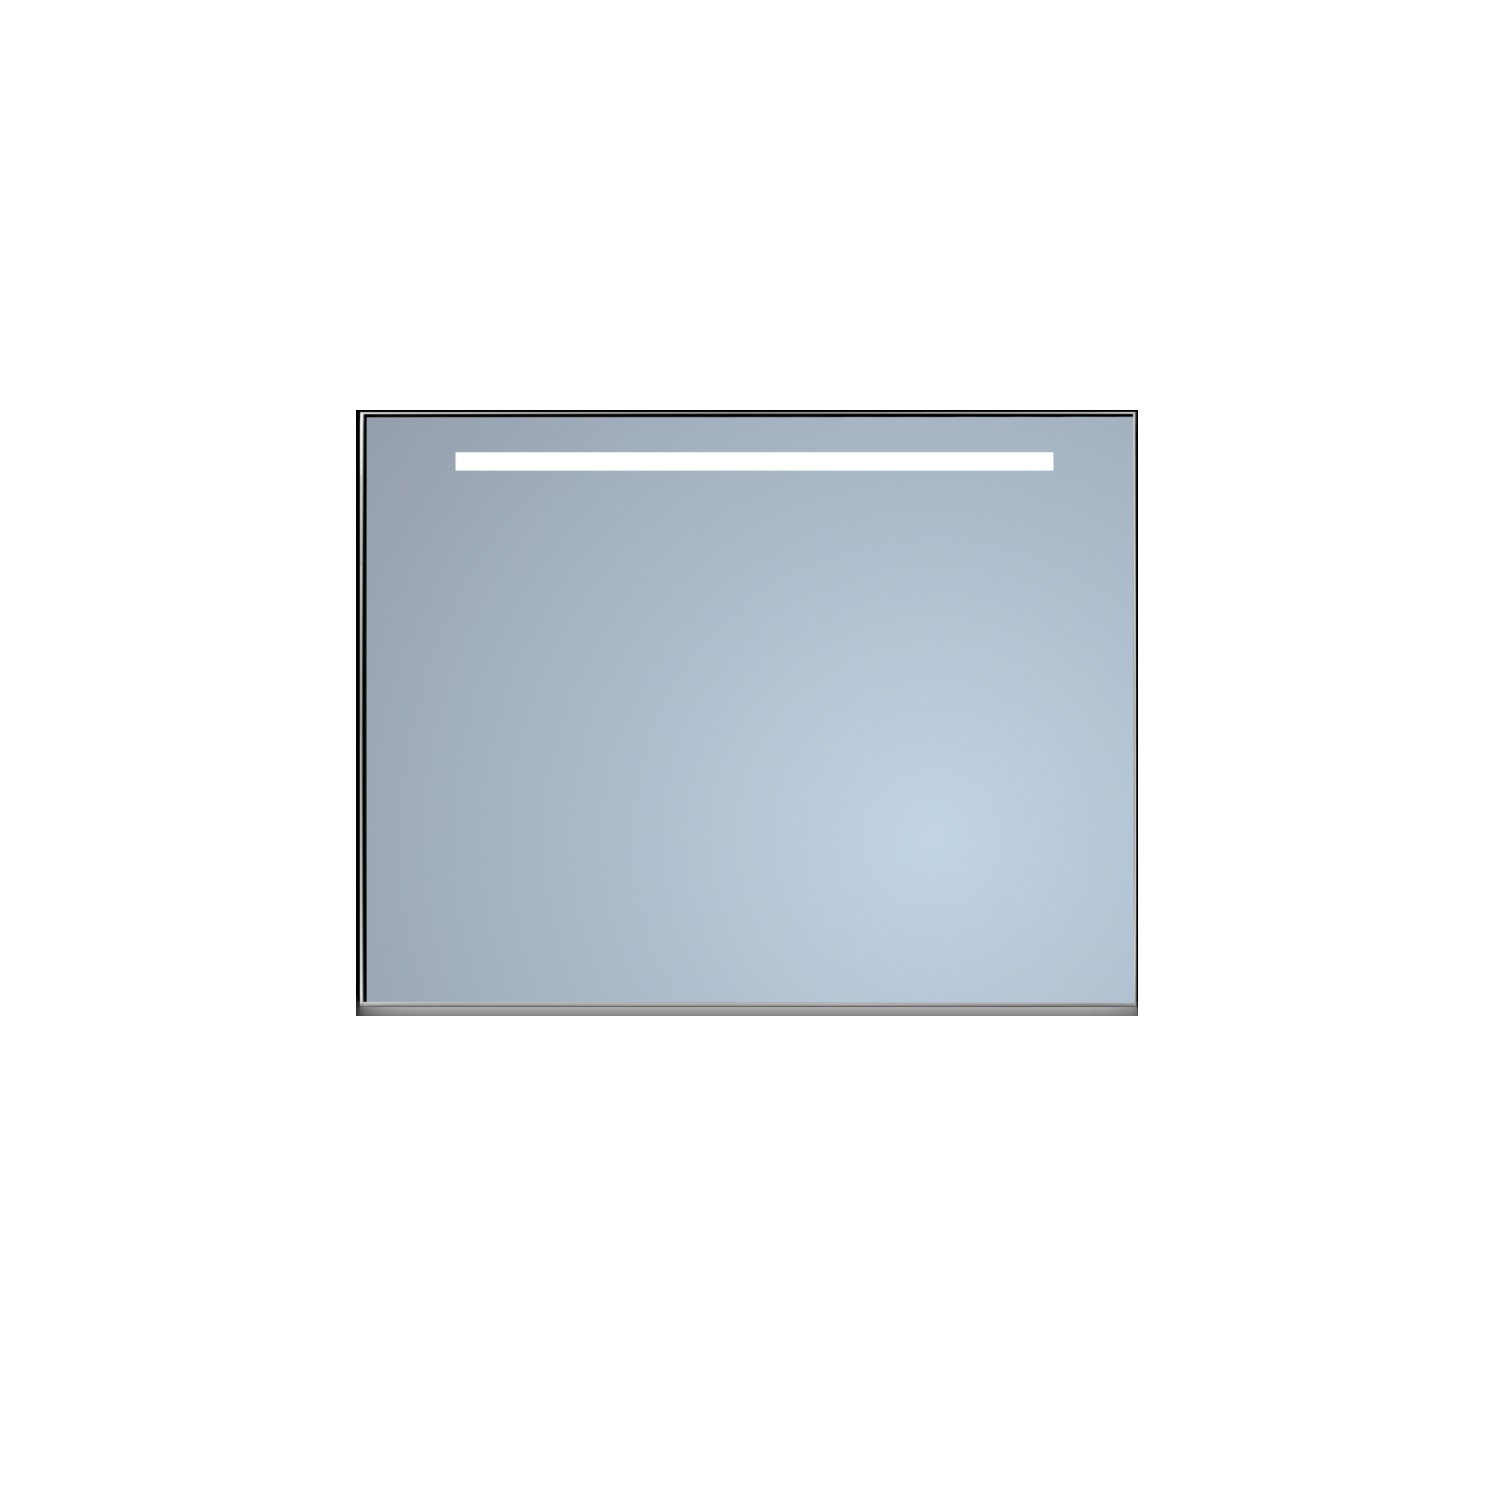 Badkamerspiegel Sanicare Q-Mirrors Ambiance en 'Warm White' LED-verlichting 70x60x3,5 Alu Omlijsting